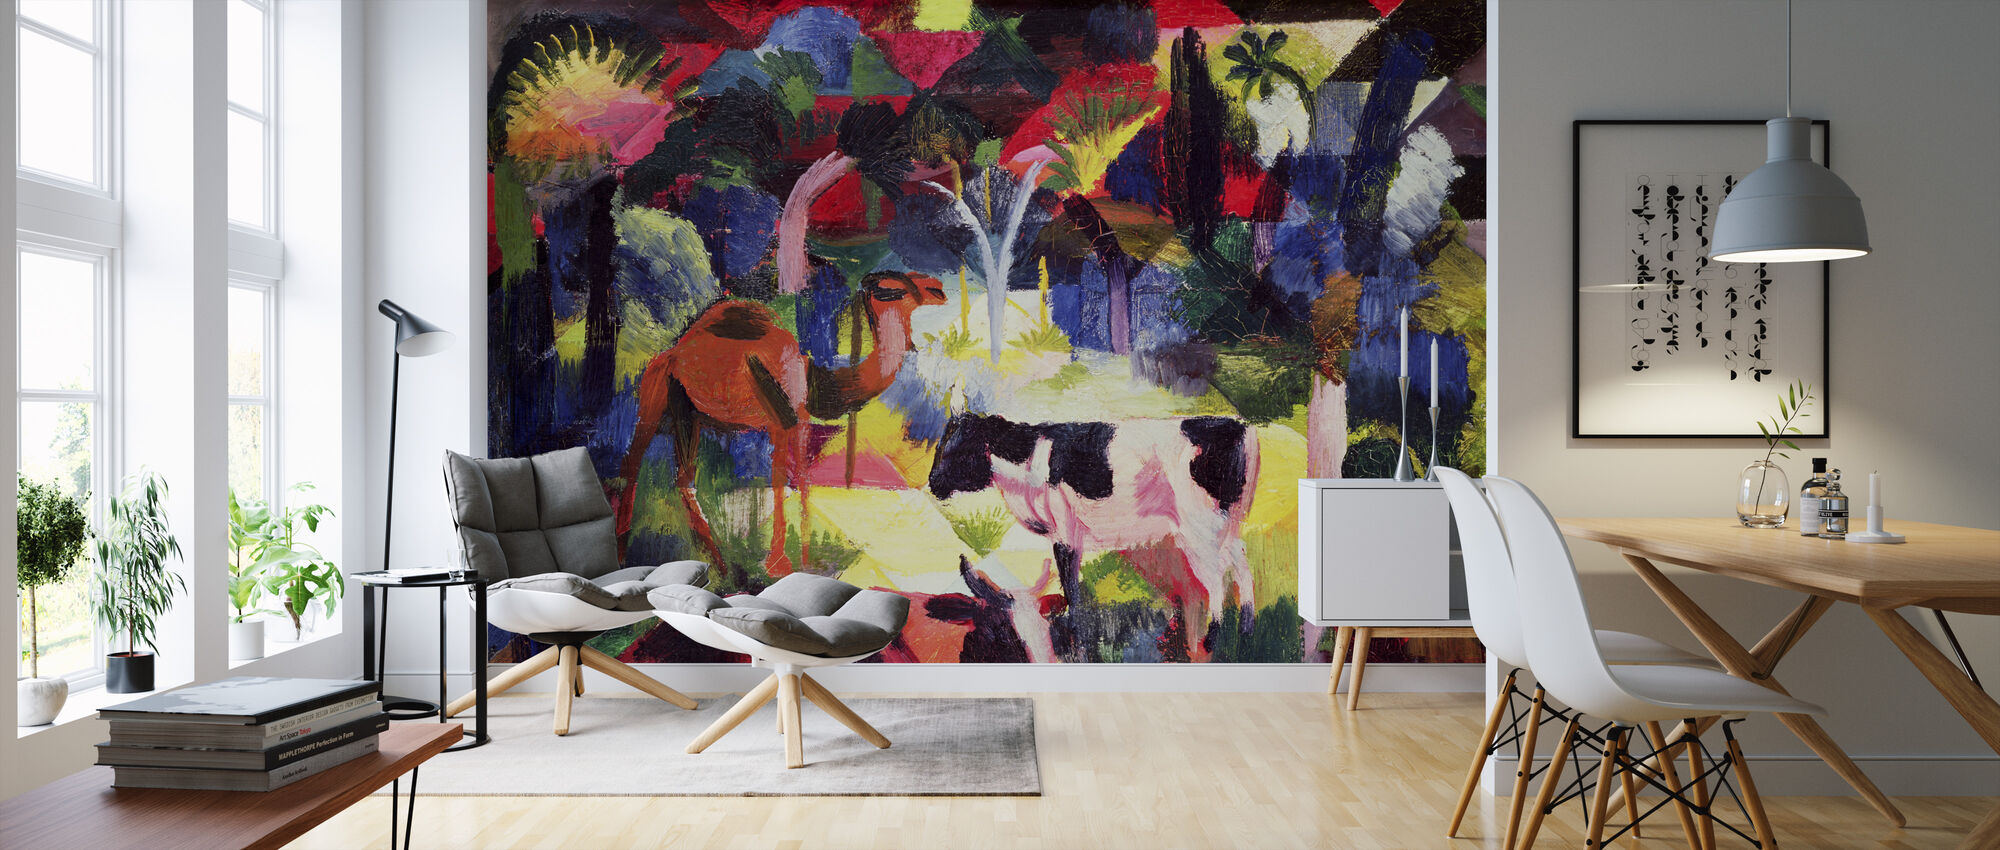 Cows and a Camel, August Macke - Wallpaper - Living Room